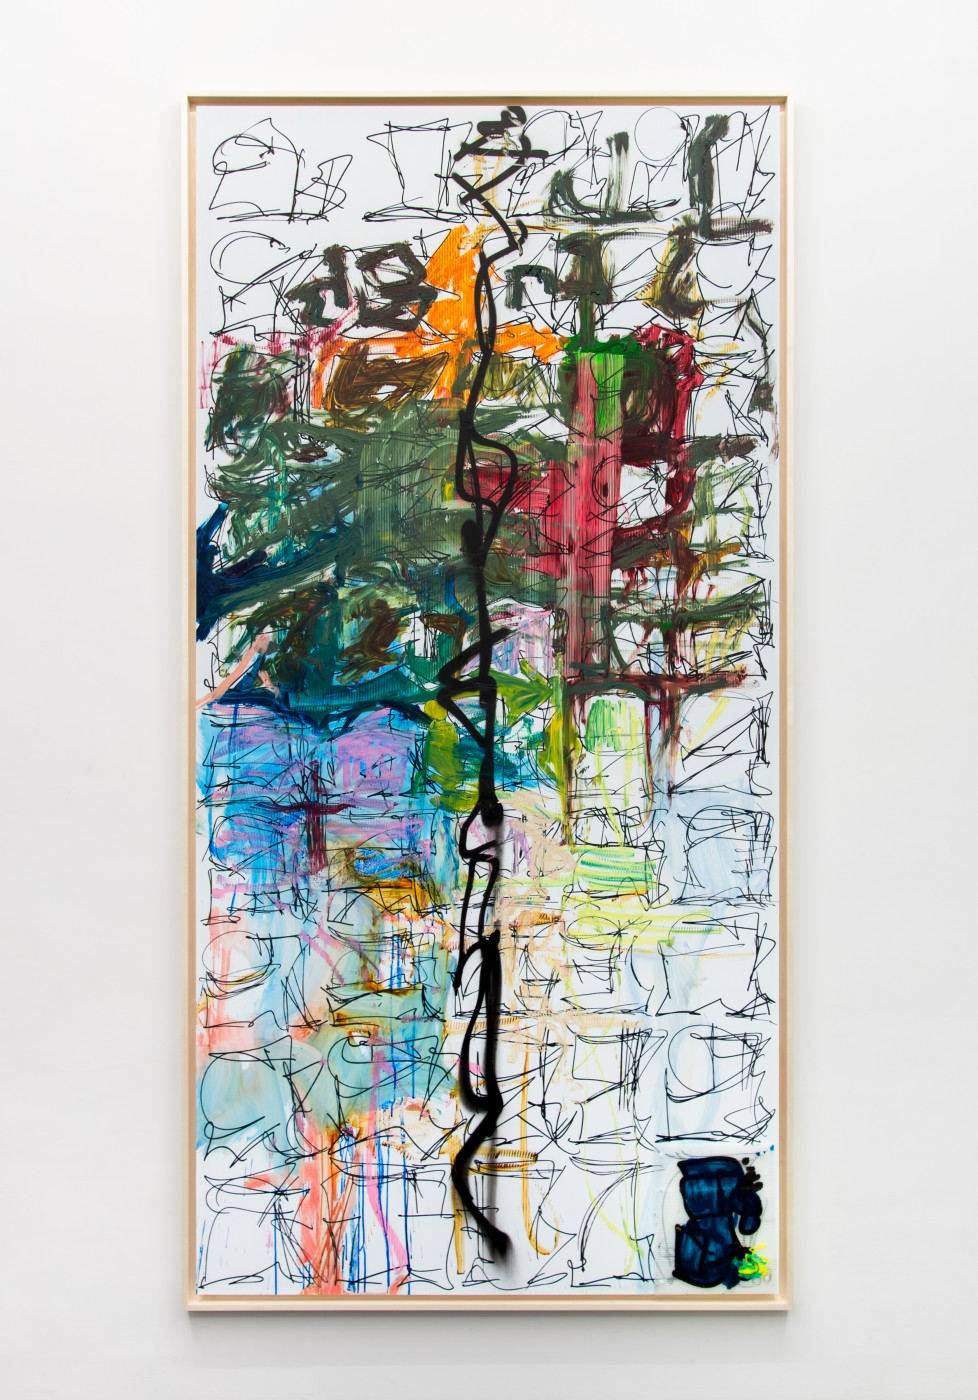 I&#8217;m Nobody! Aaron Garber-Maikovska  Untitled</I>, 2017 Ink,